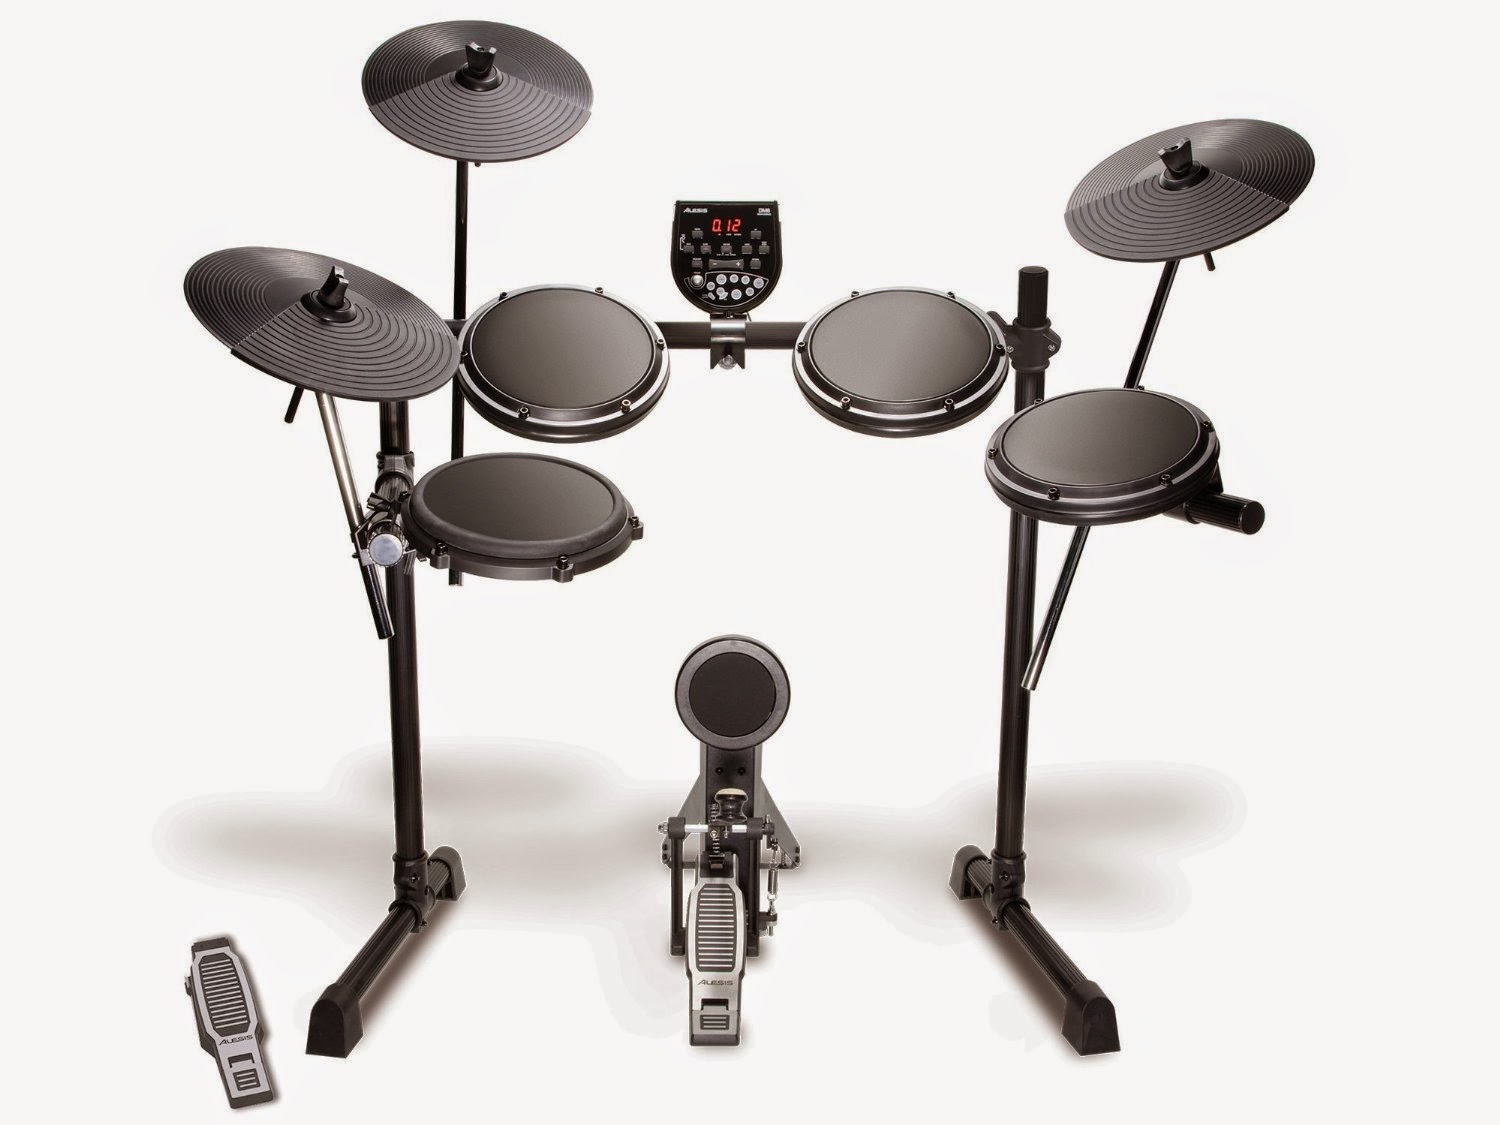 Amazon: Buy Alesis DM6 USB Kit Five-Piece Electronic Drum Set at Rs. 27999